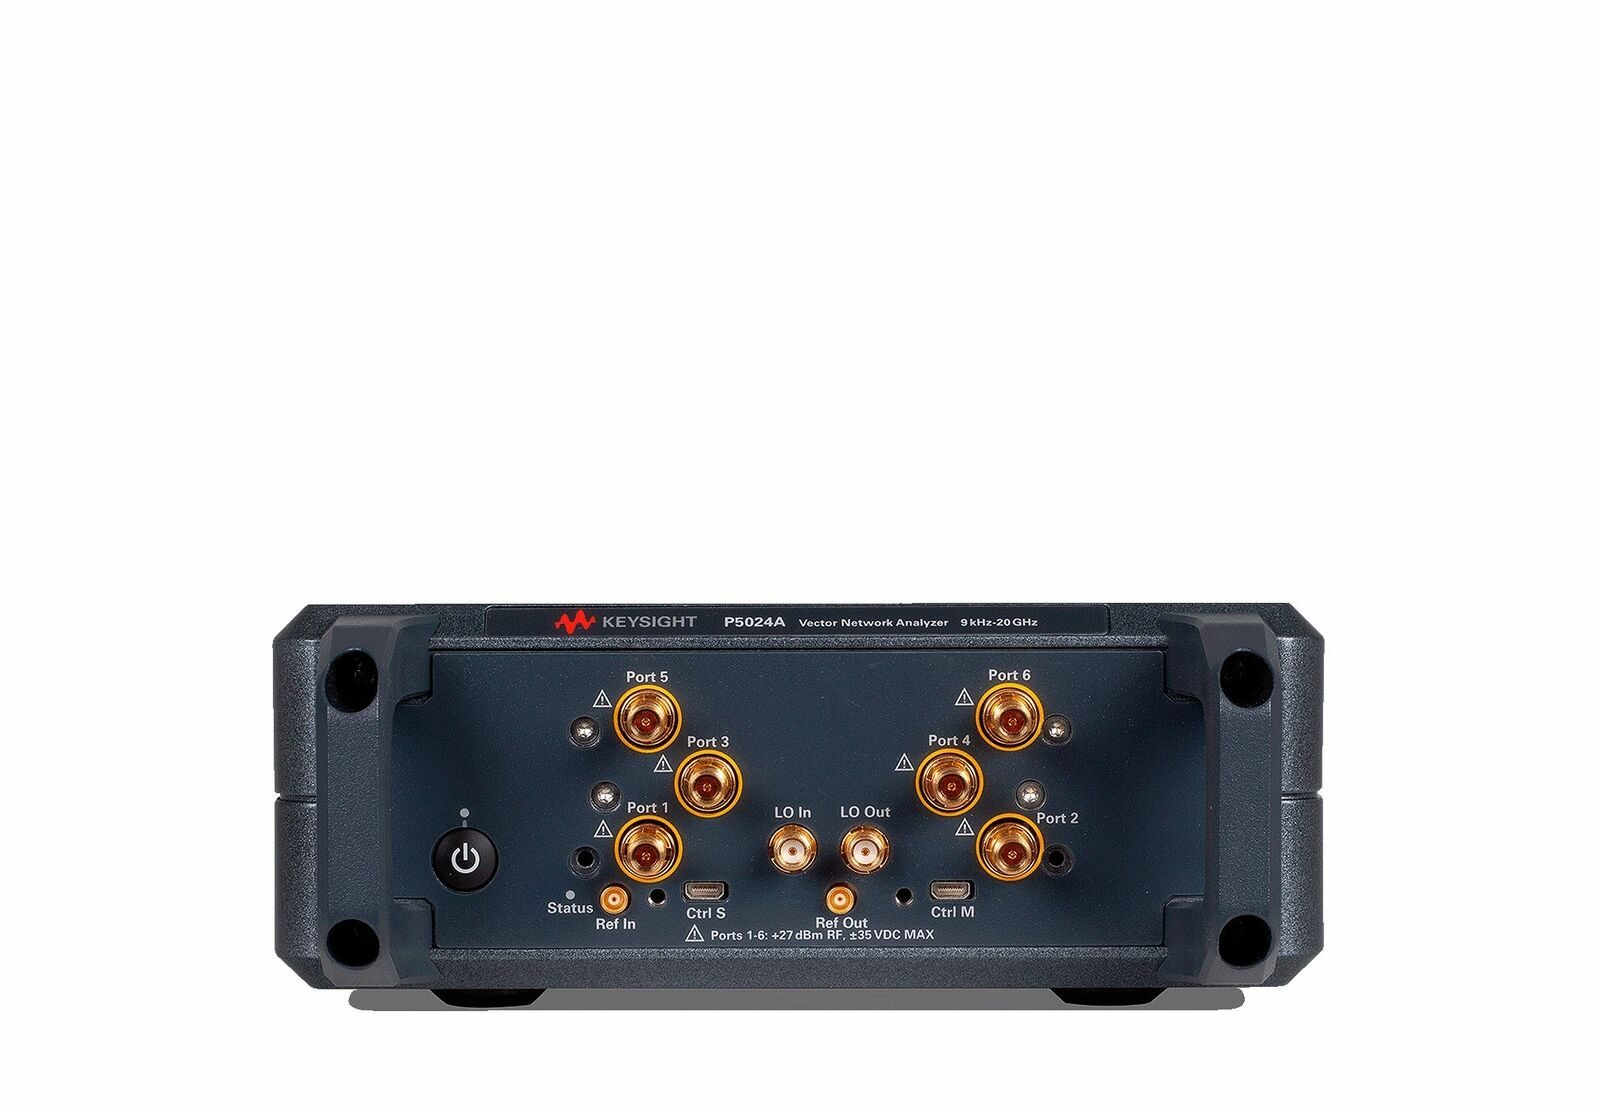 Keysight P5024A-600 6-port